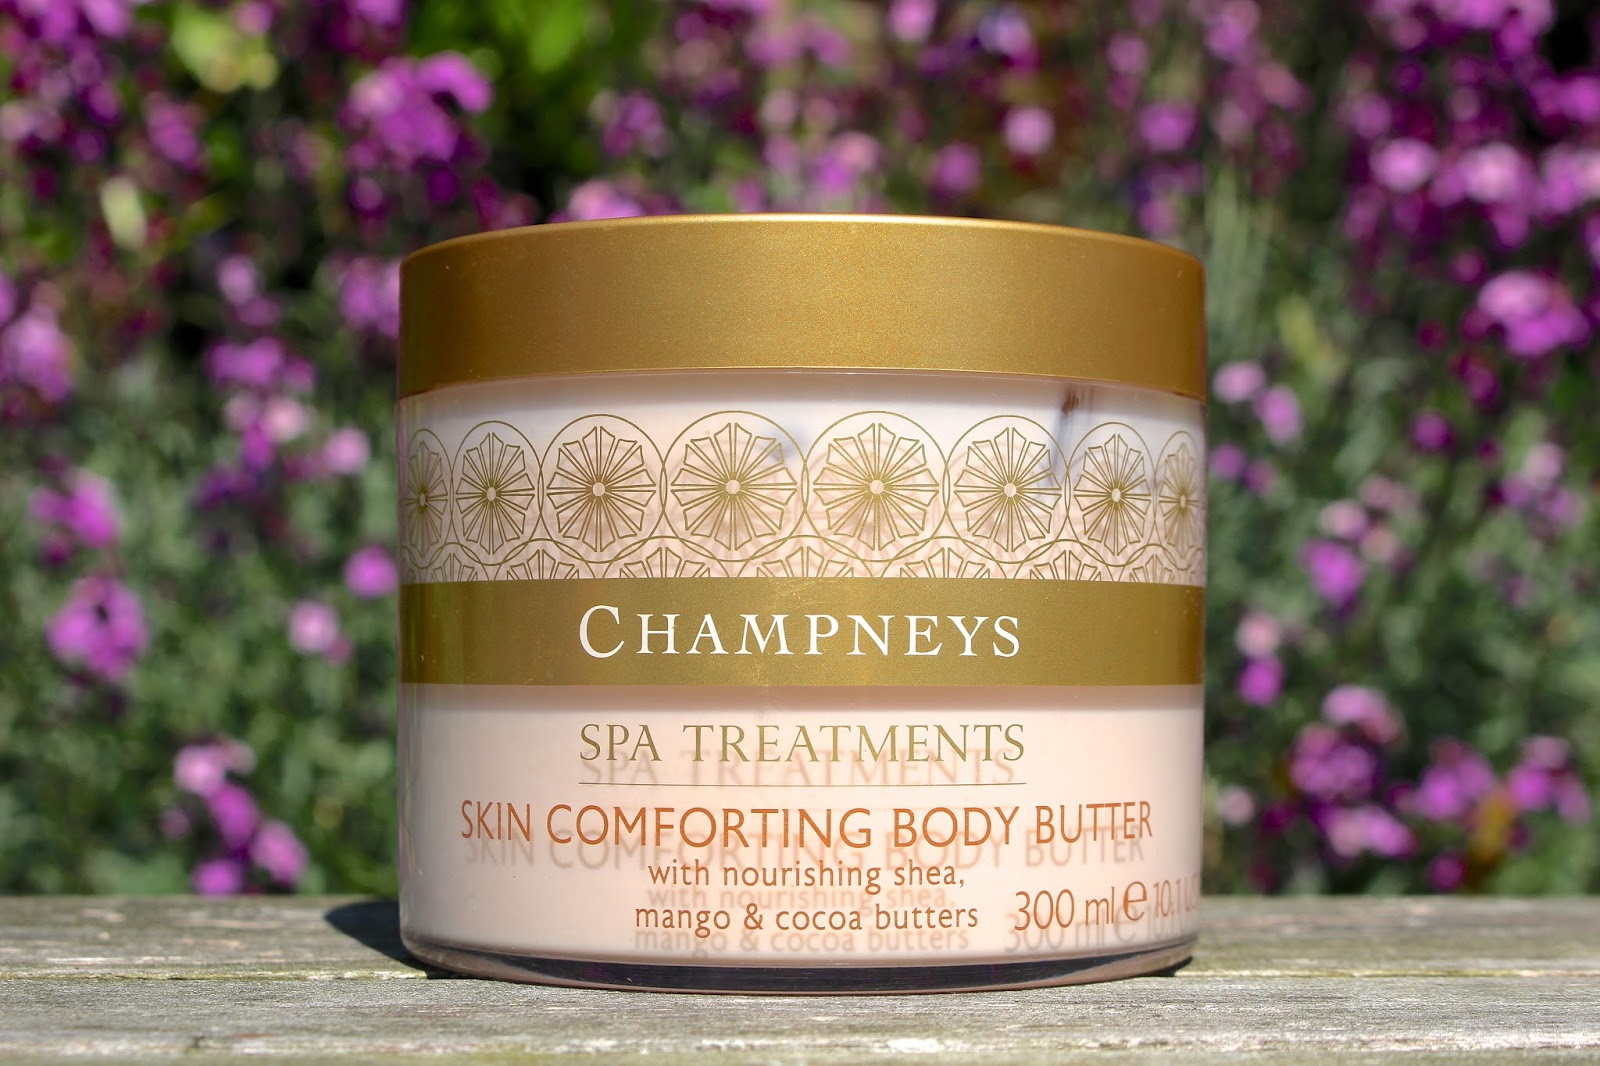 Body Butters for smoother skin